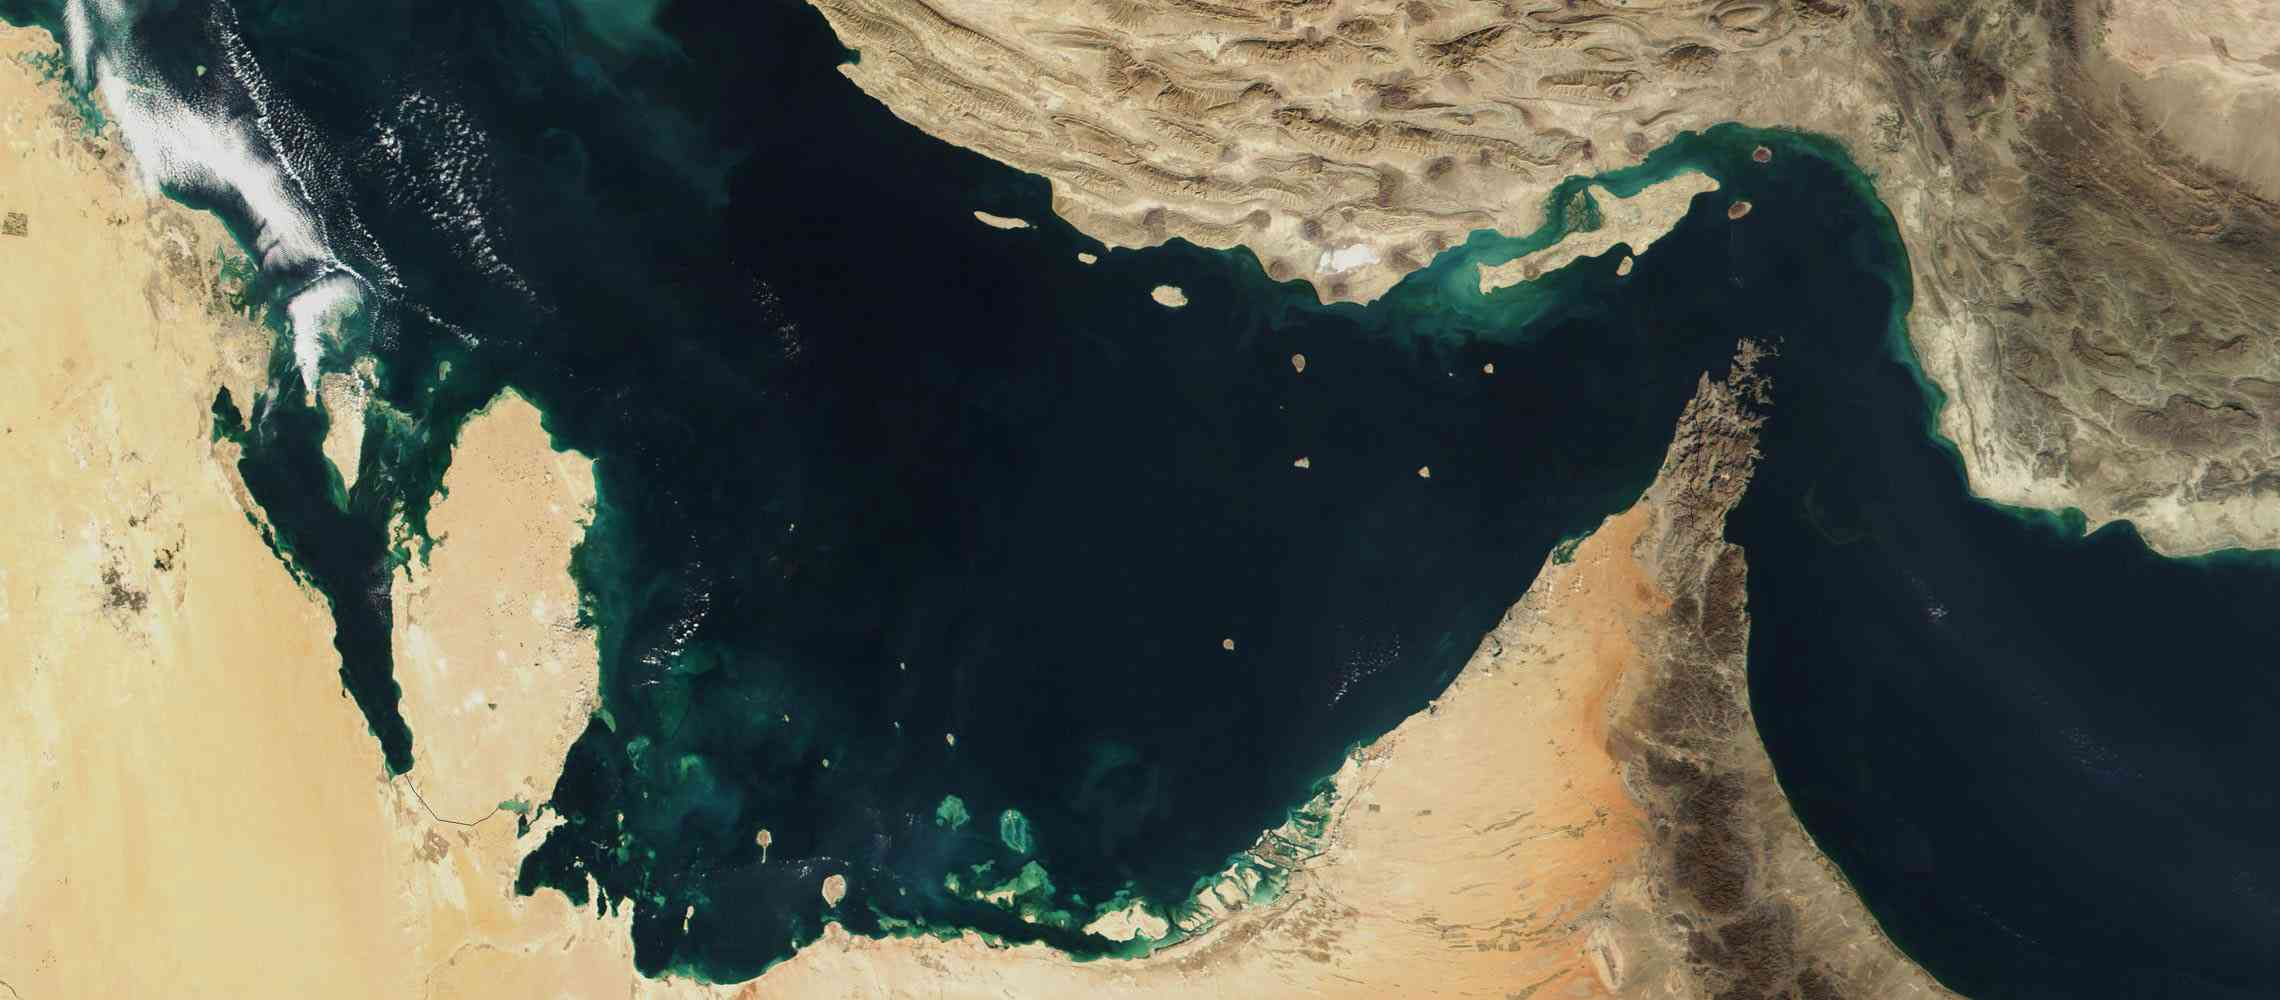 Providing essential information and advice to mariners navigating within the Middle East Gulf